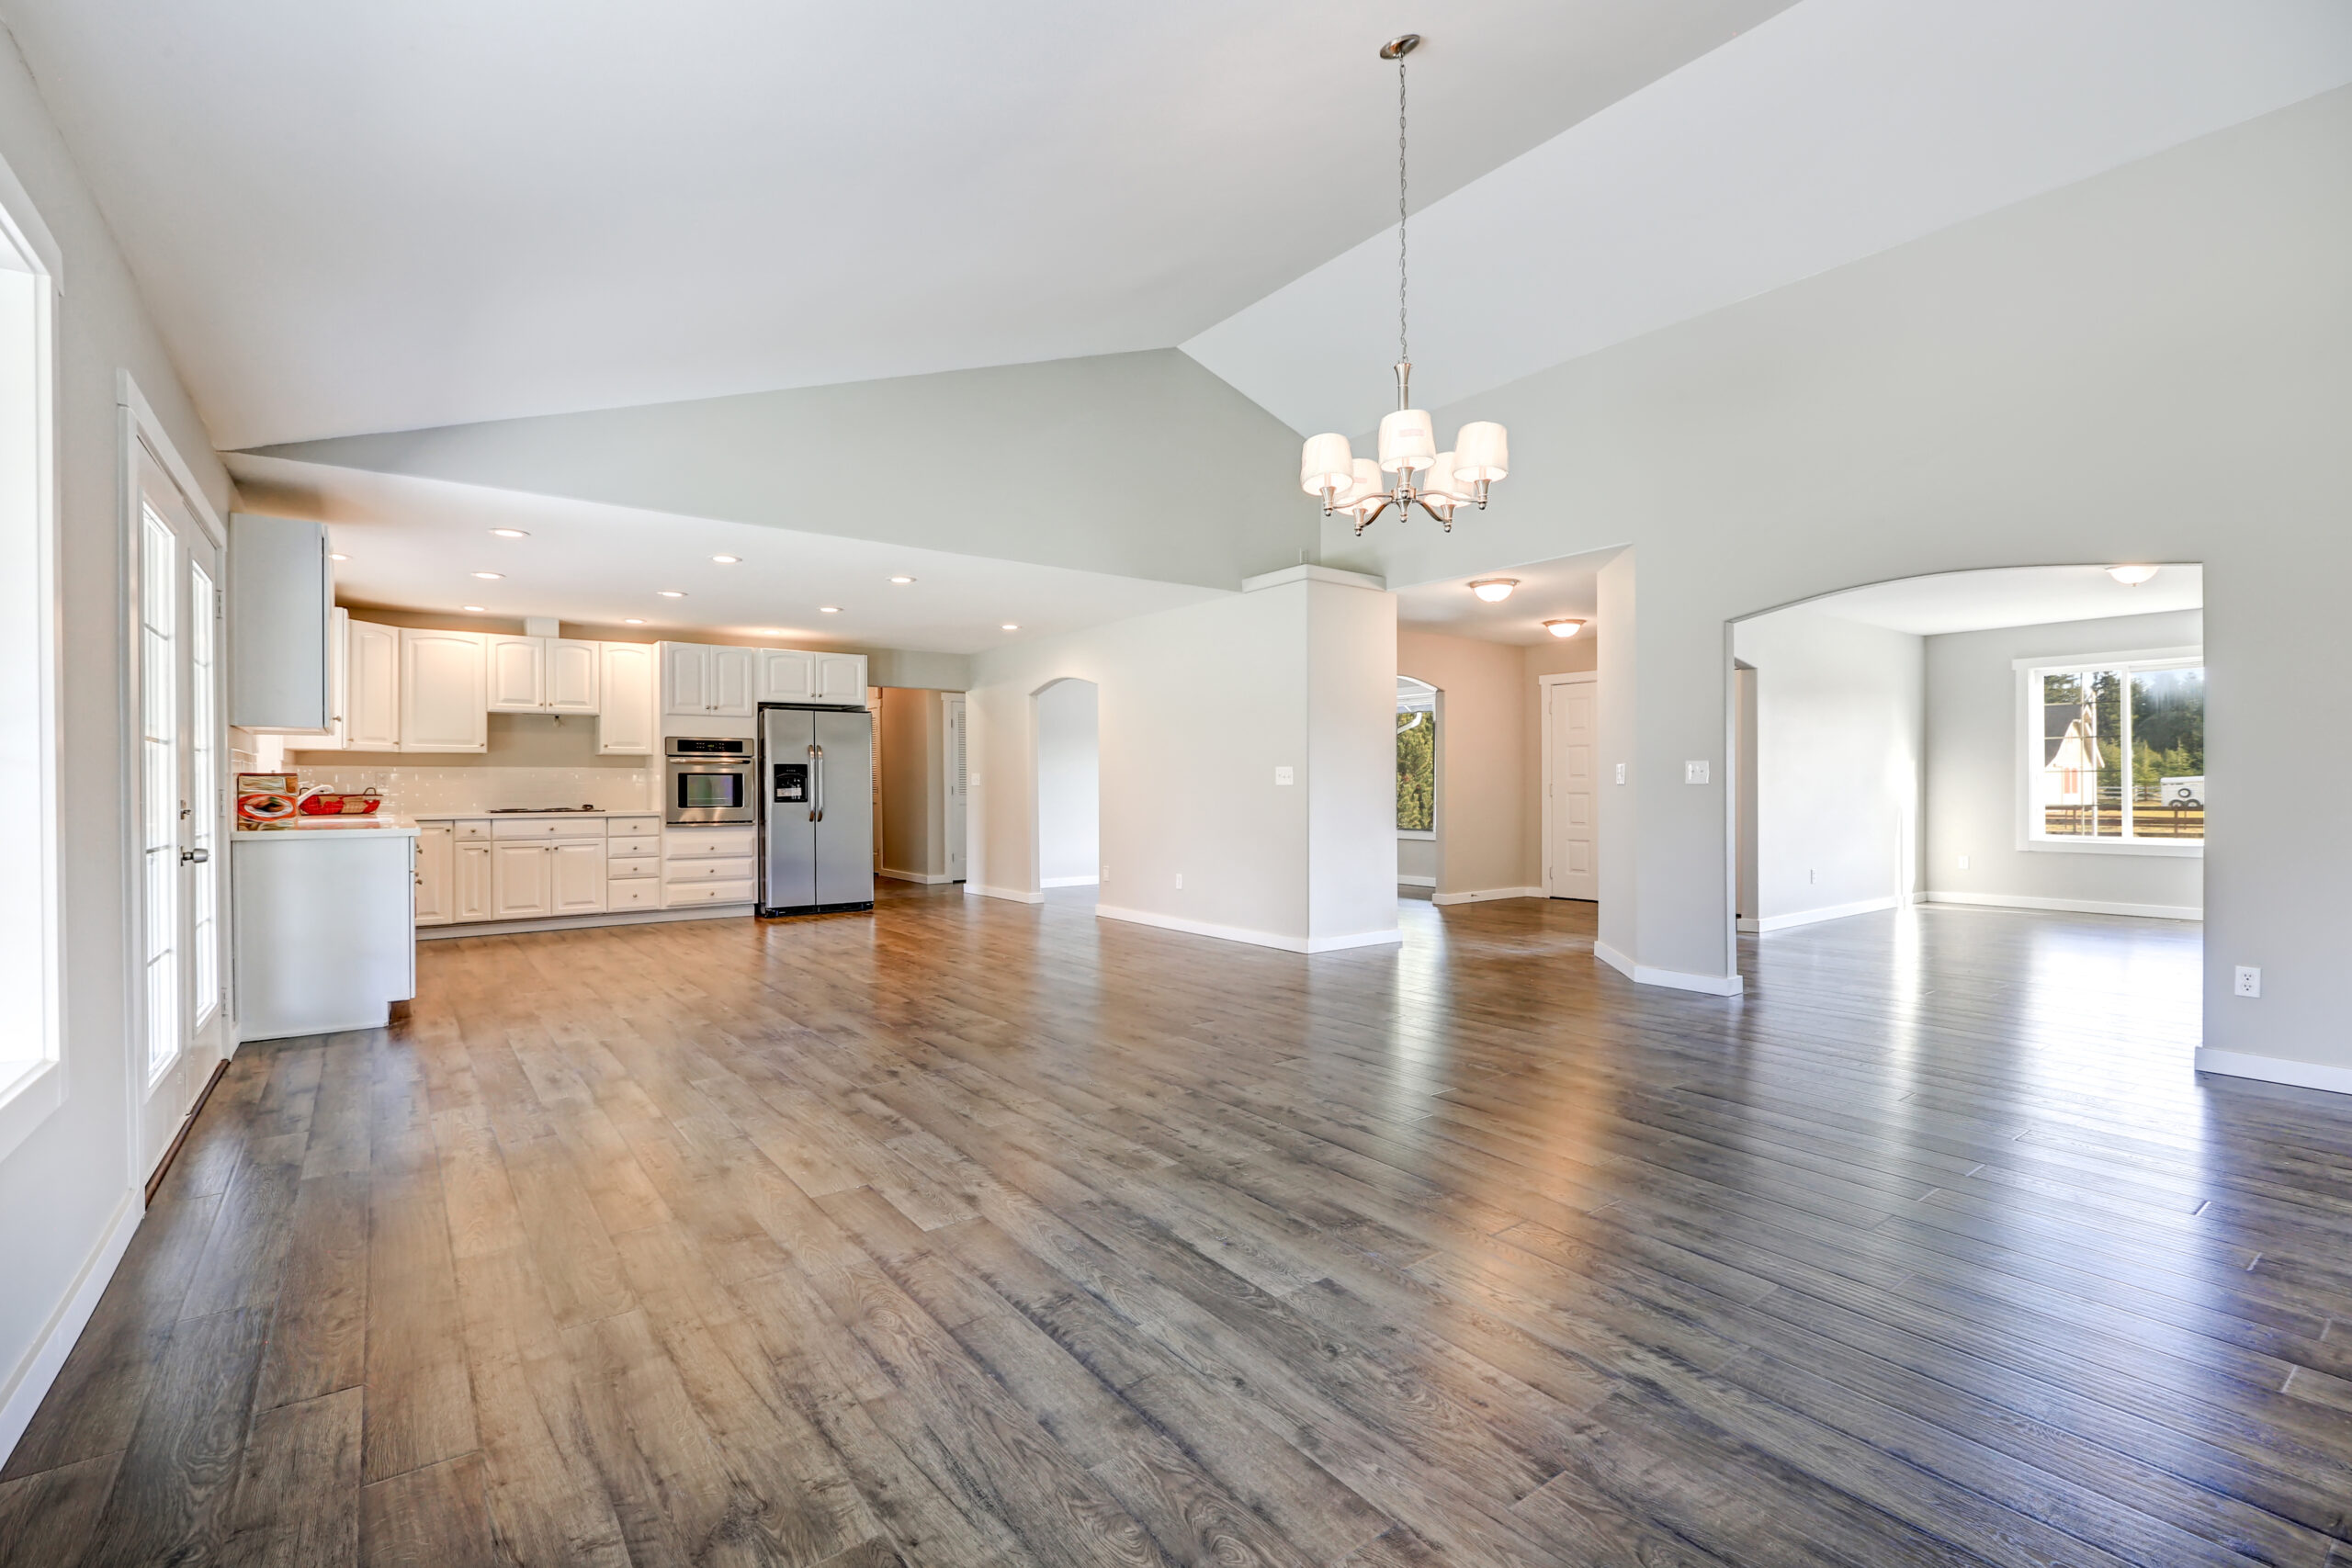 Spacious rambler home interior with vaulted ceiling over glossy laminate floor. Empty light filled dining or living space adjacent to new white kitchen room features pale grey walls. Northwest, USA